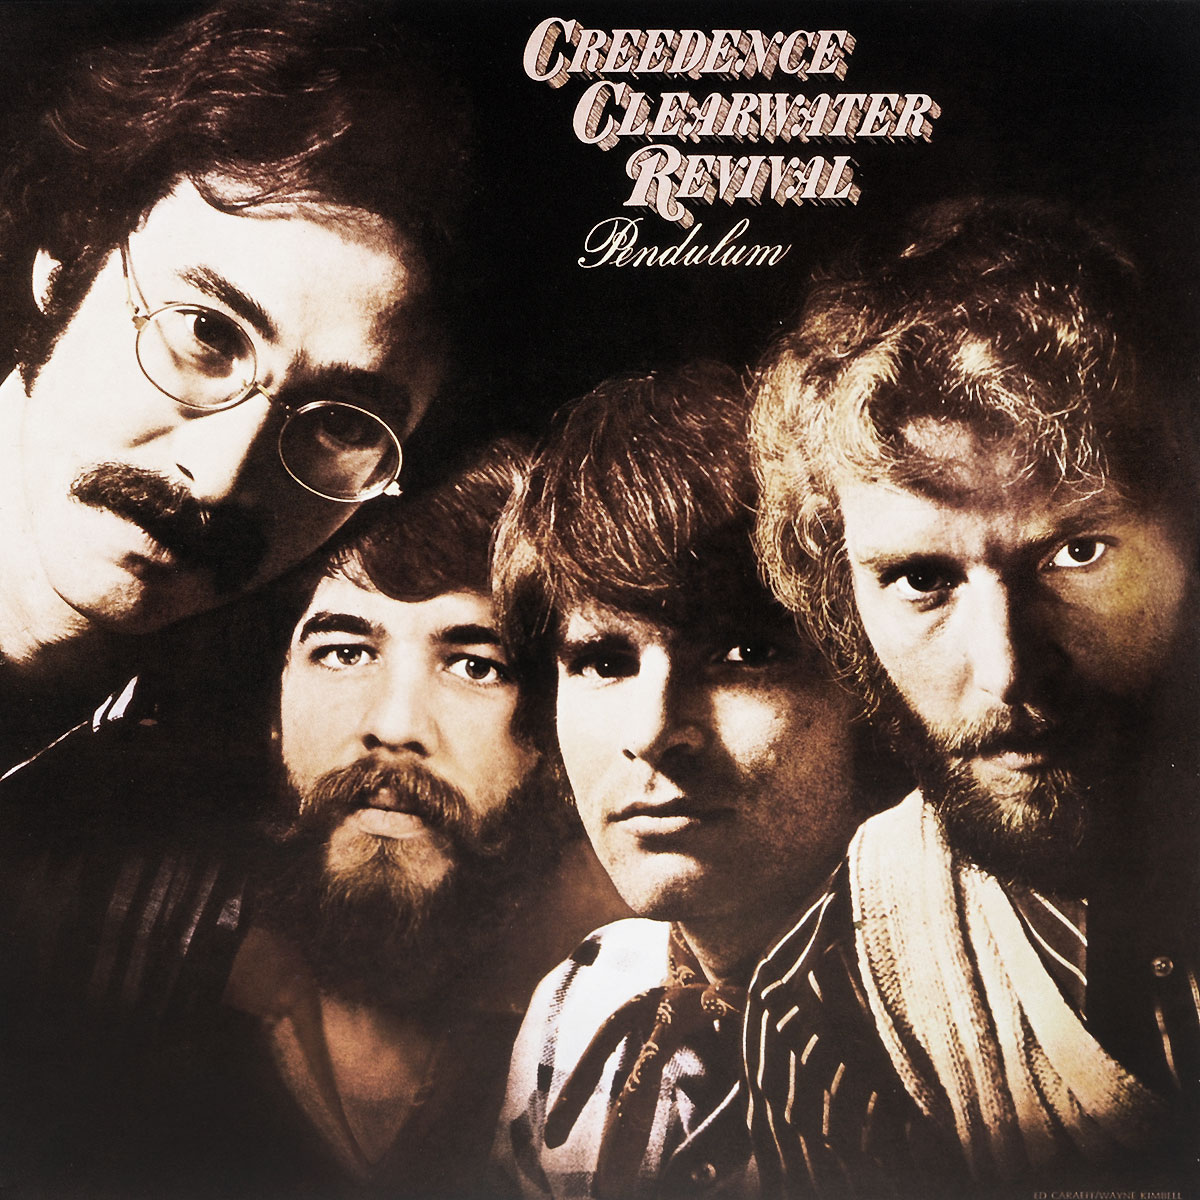 Creedence Clearwater Revival Creedence Clearwater Revival. Pendulum (LP)